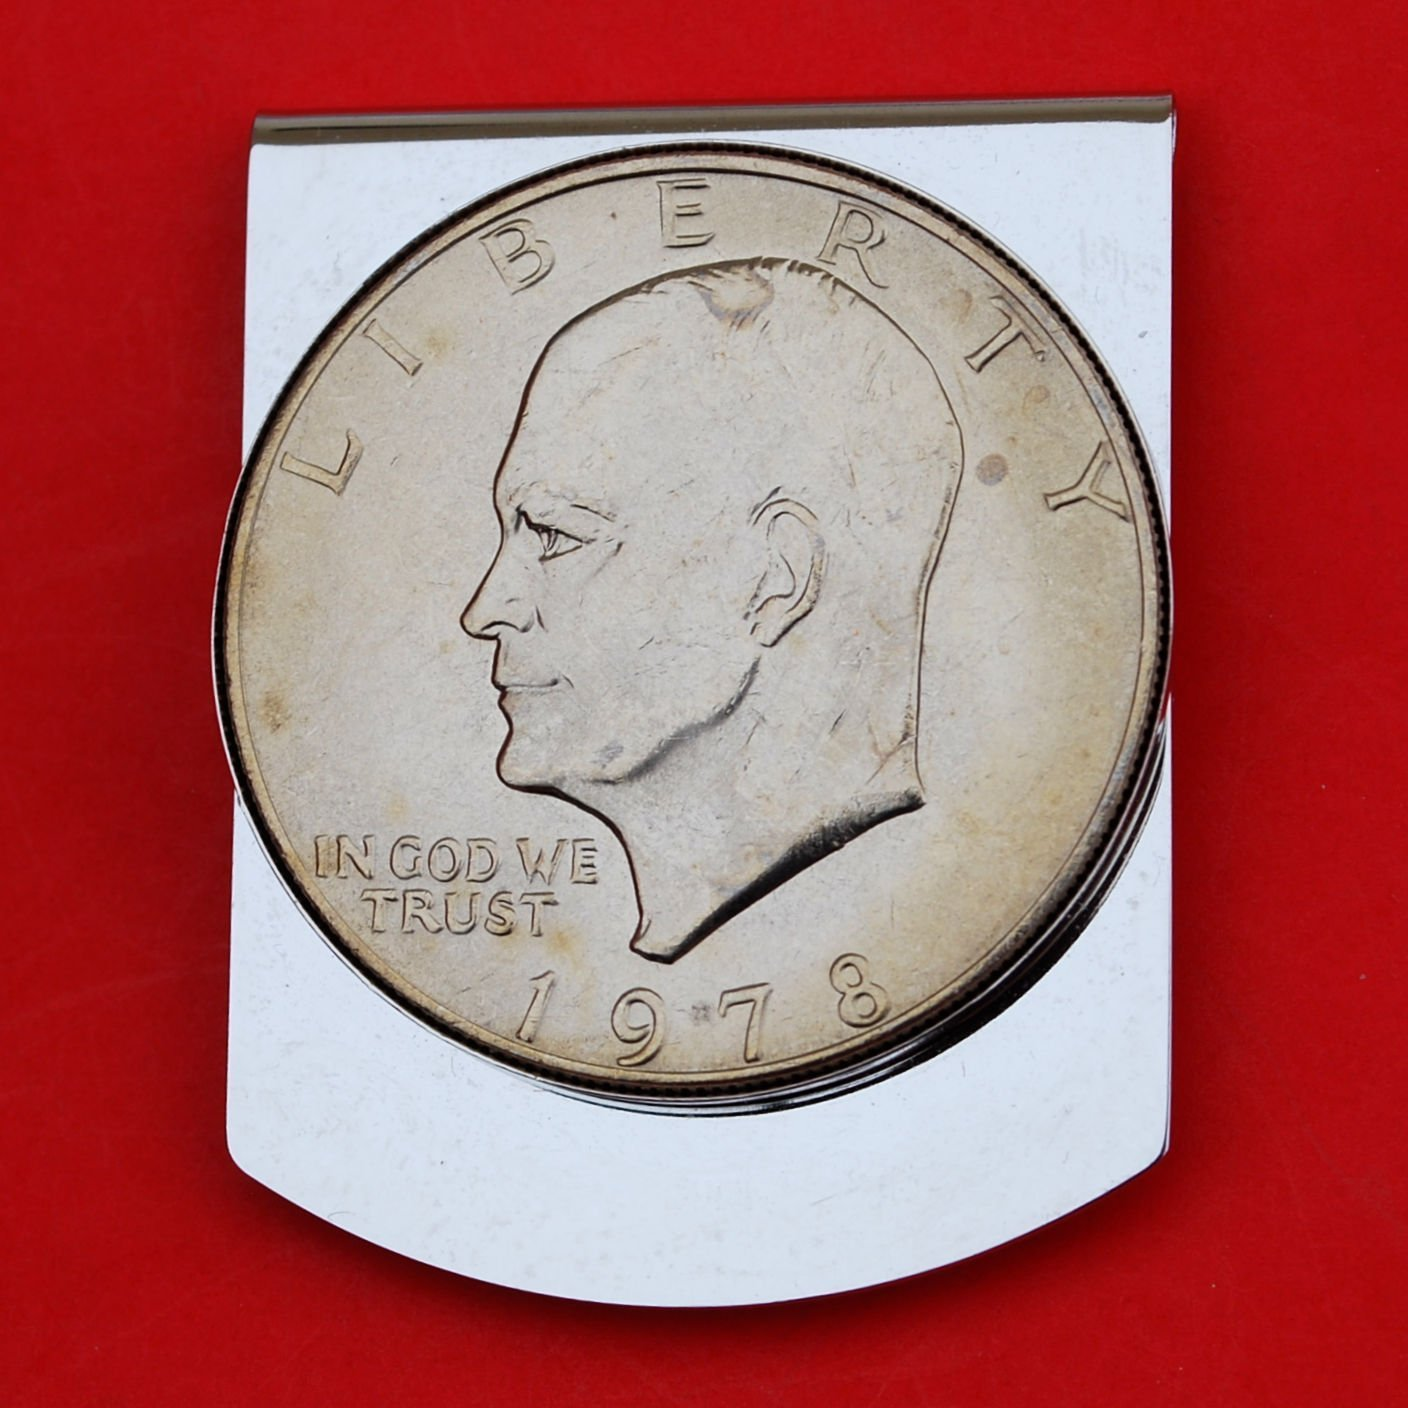 US 1978 Eisenhower Dollar BU Uncirculated Coin Stainless Steel Large Money Clip NEW - Wide Design